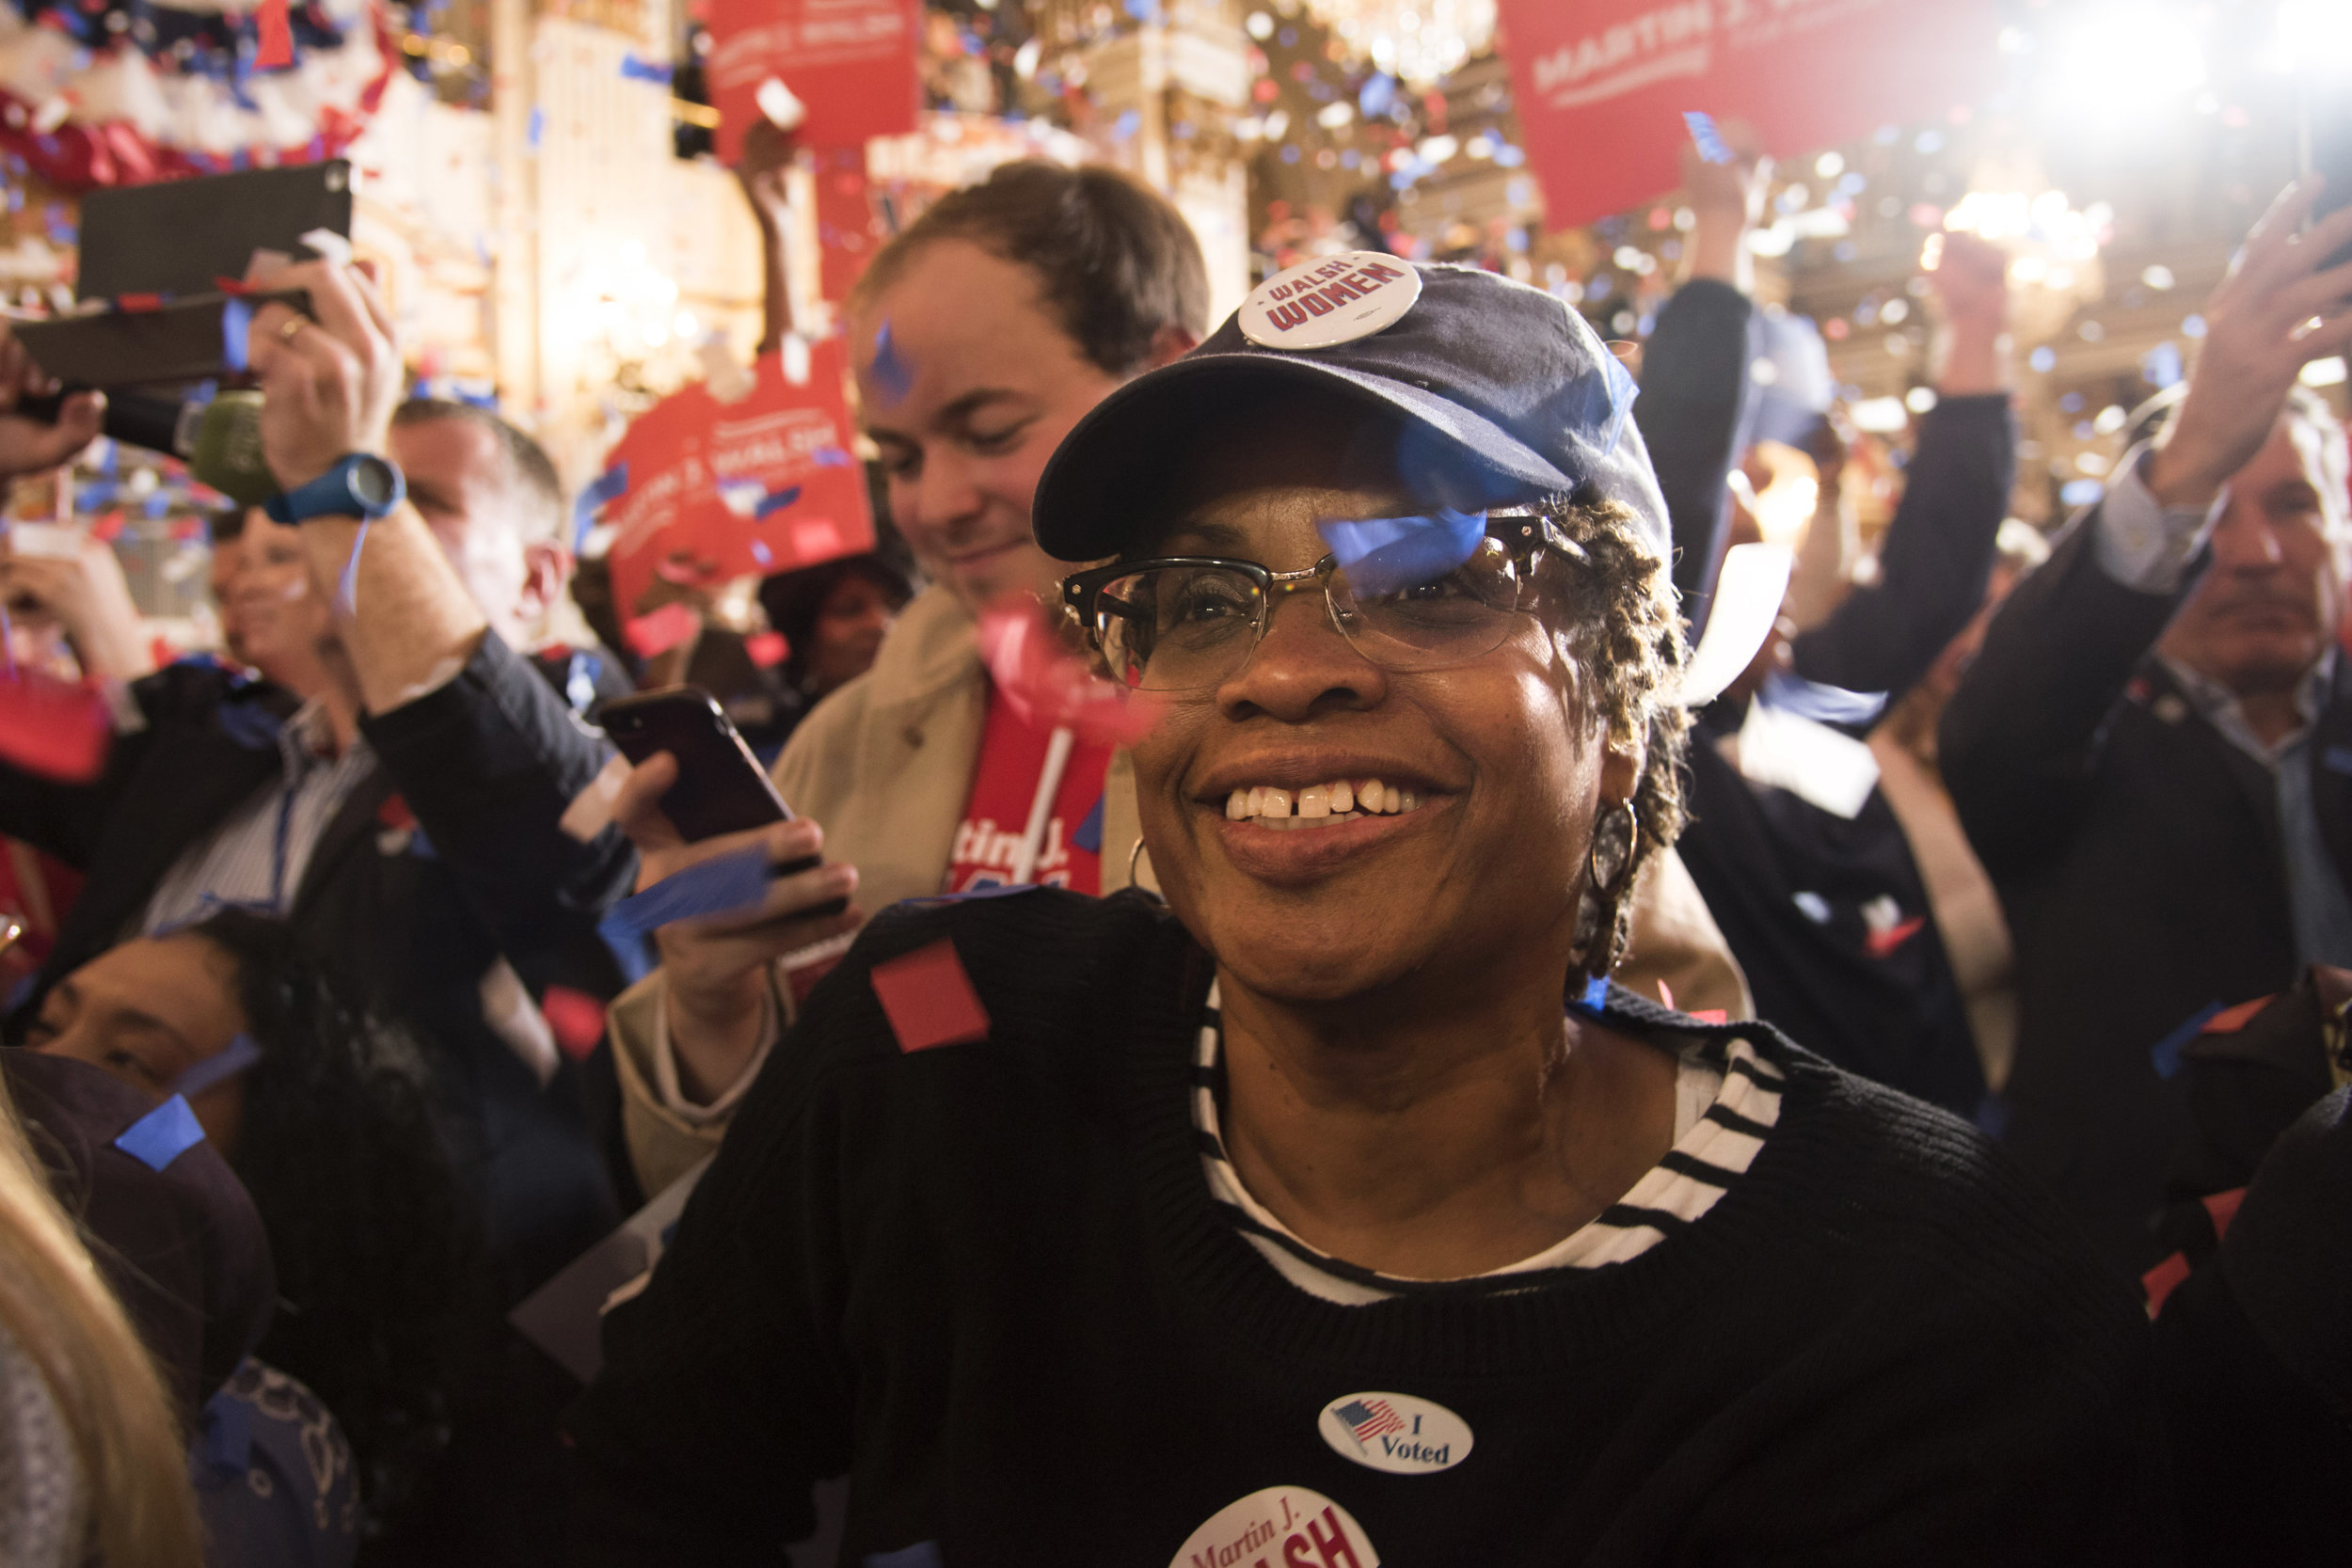 Dwan Packnett, a Walsh supporter, smiles after Mayor Martin J. Walsh's speech during the Team Walsh Election Night Celebration at the Fairmont Copley Square Hotel in Boston on November 7.